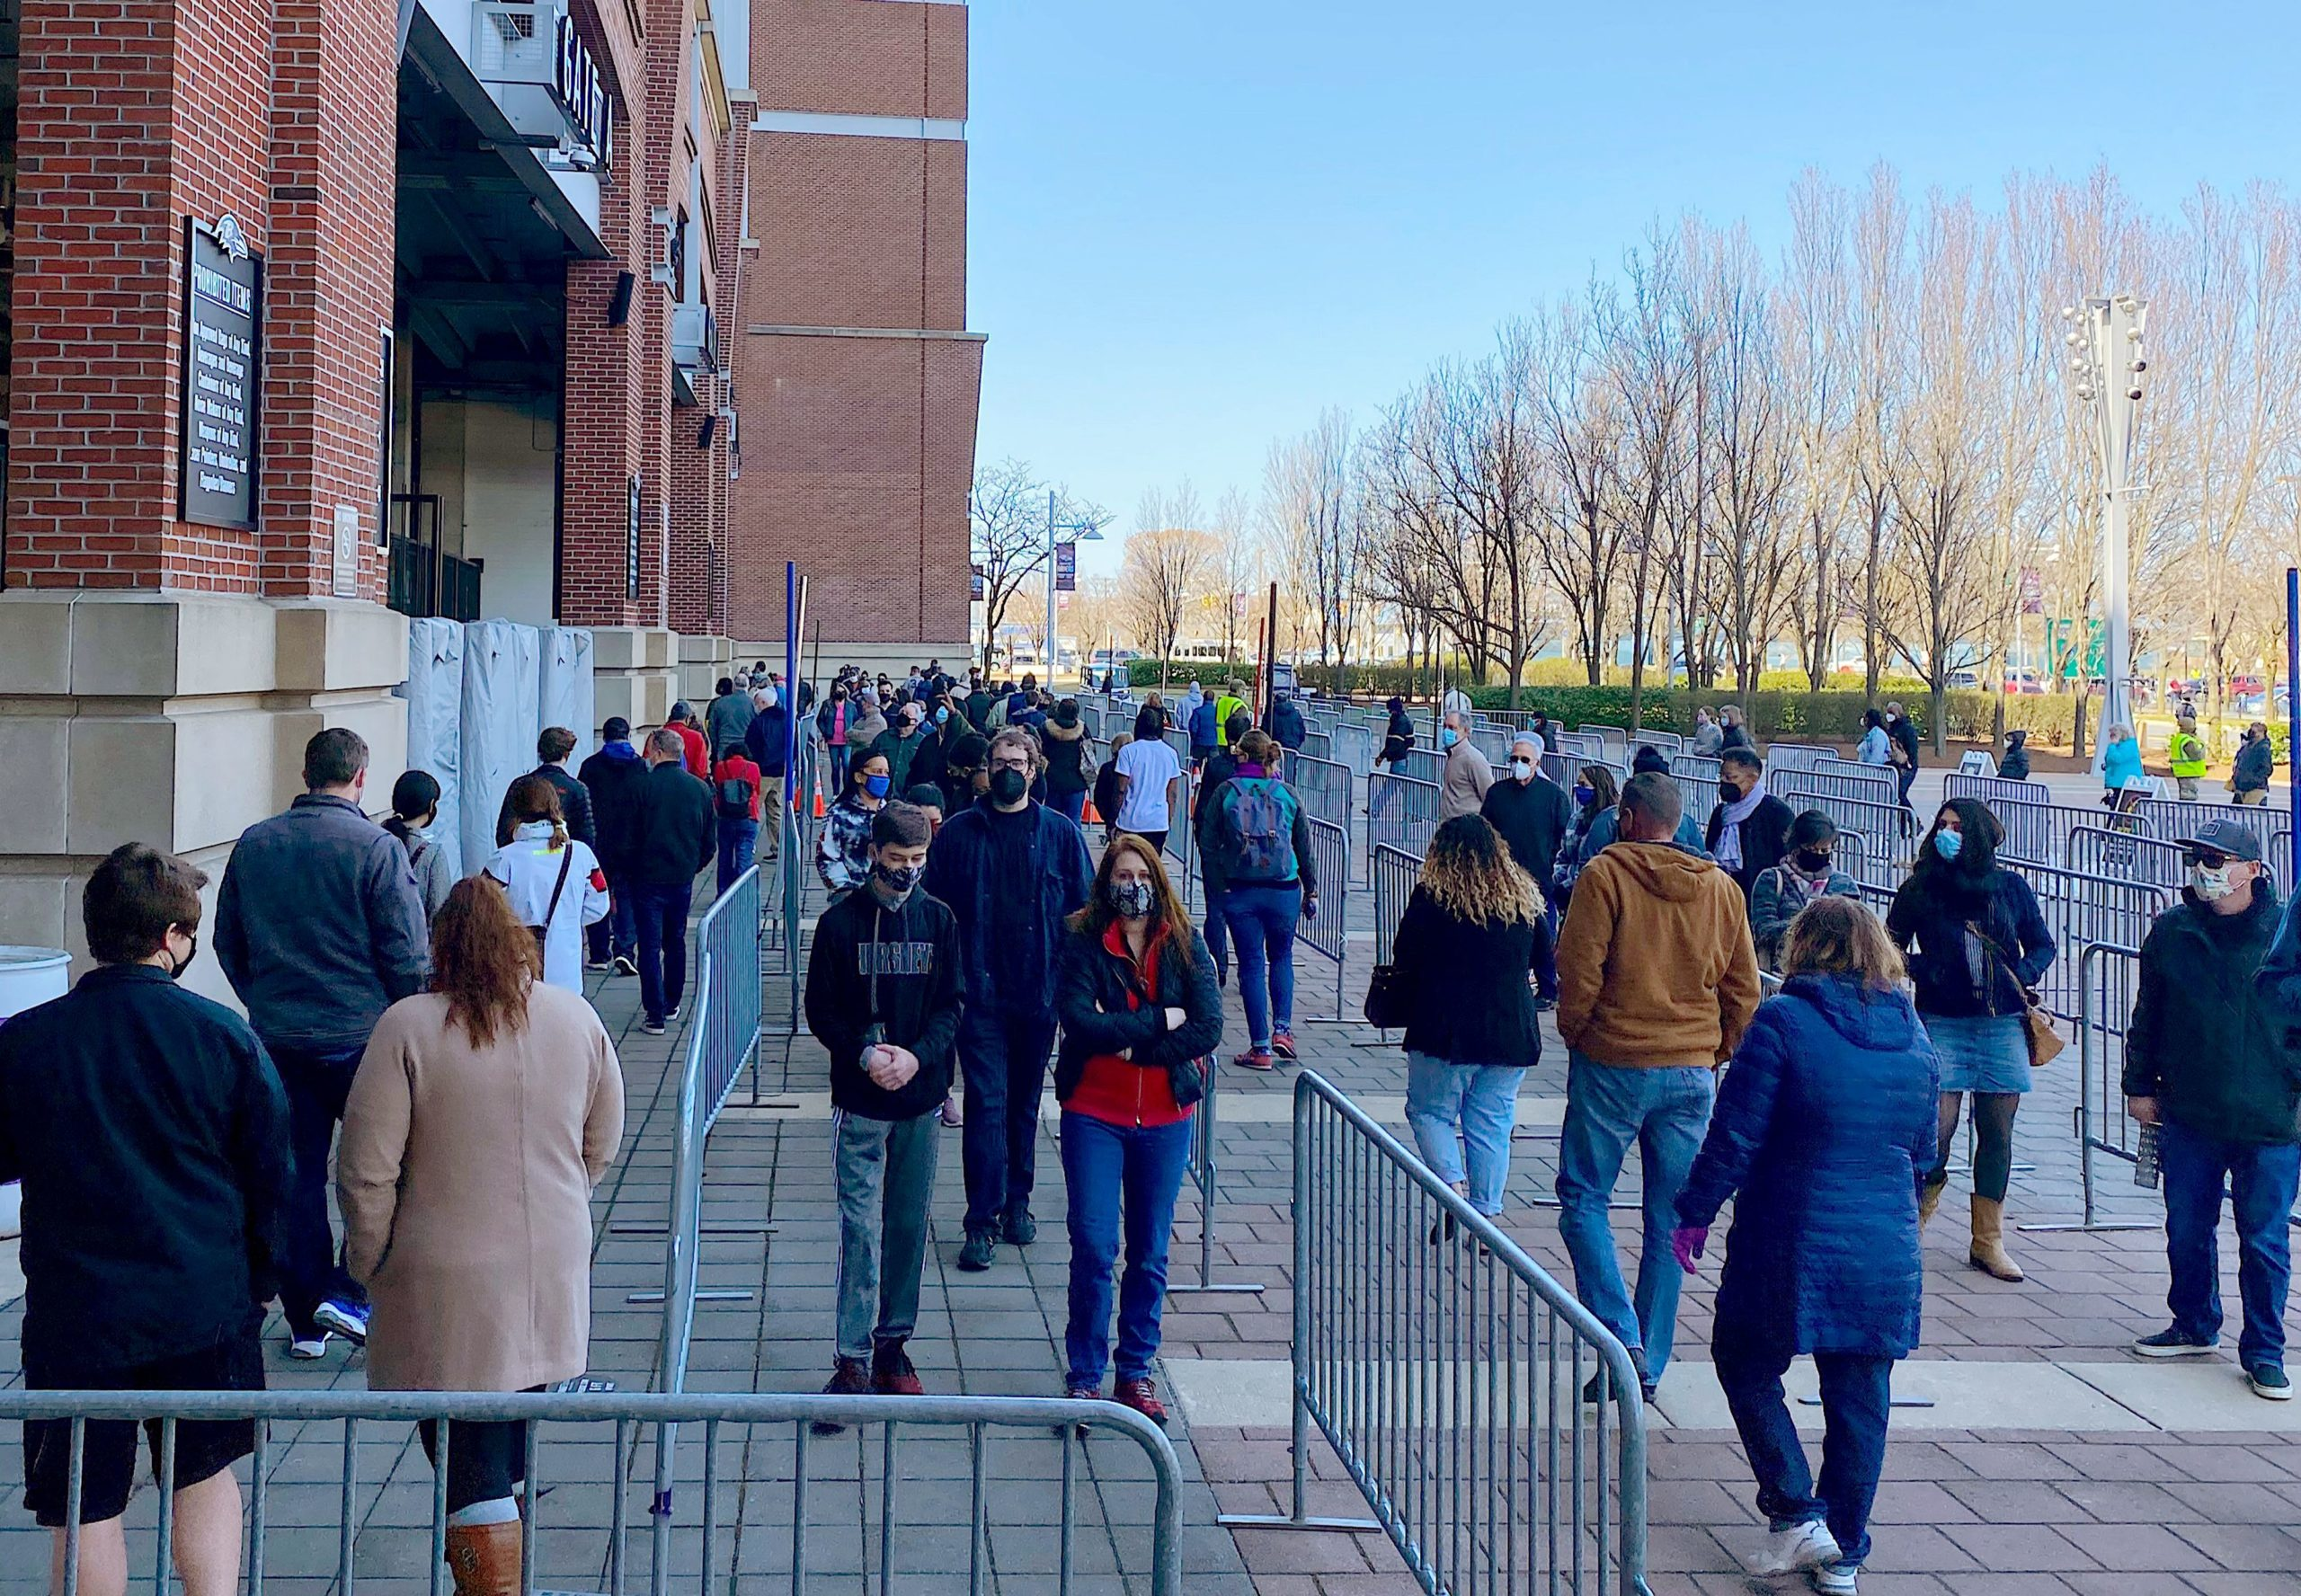 People line up at M&T Bank Stadium in Baltimore, Maryland, to get vaccinated on March 20, 2021. (ERIC BARADAT/AFP via Getty Images)